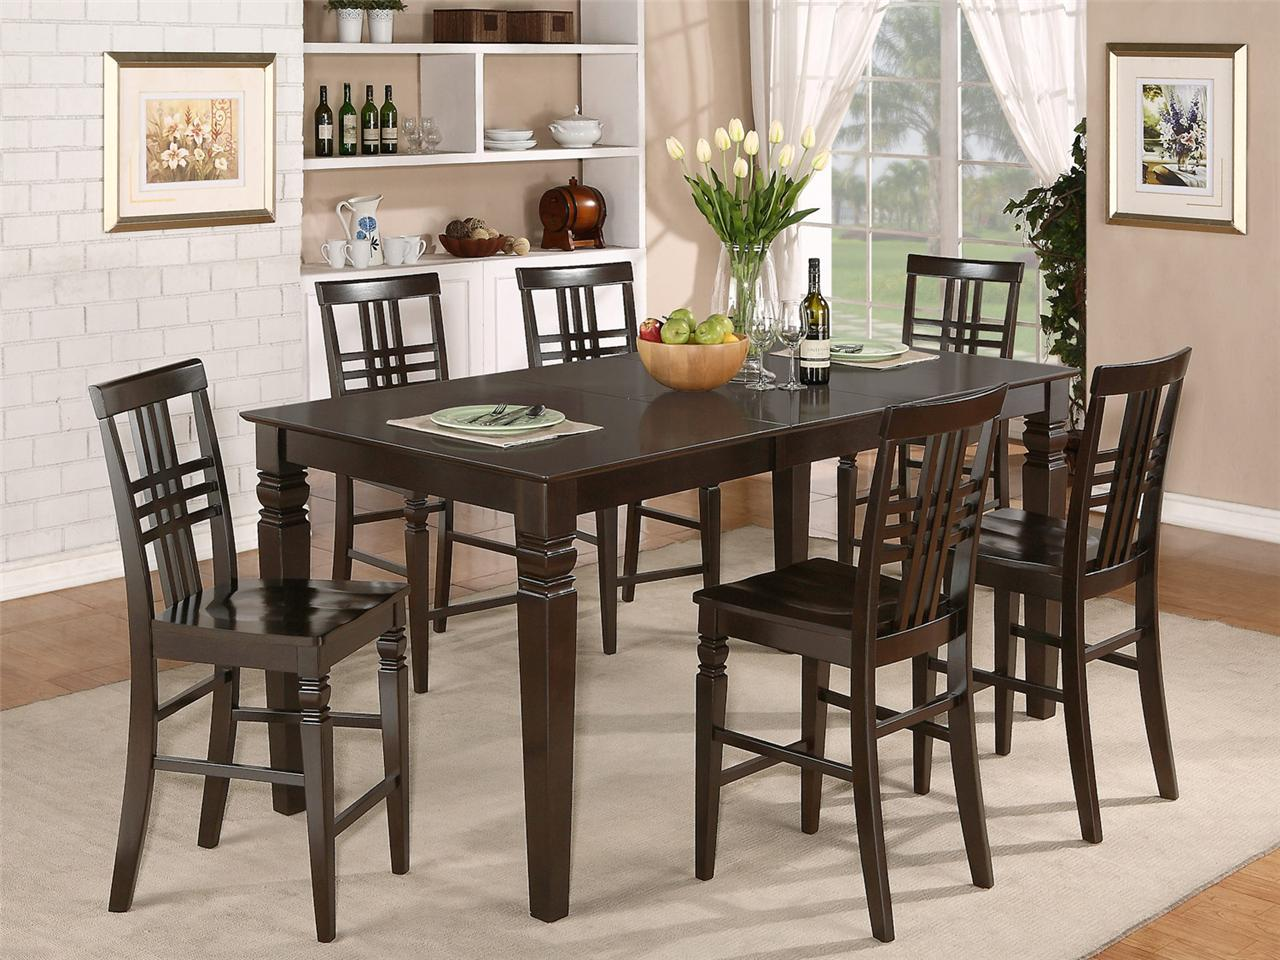 9PC COUNTER HEIGHT DINING SET, TABLE with 8 WOOD SEAT ...